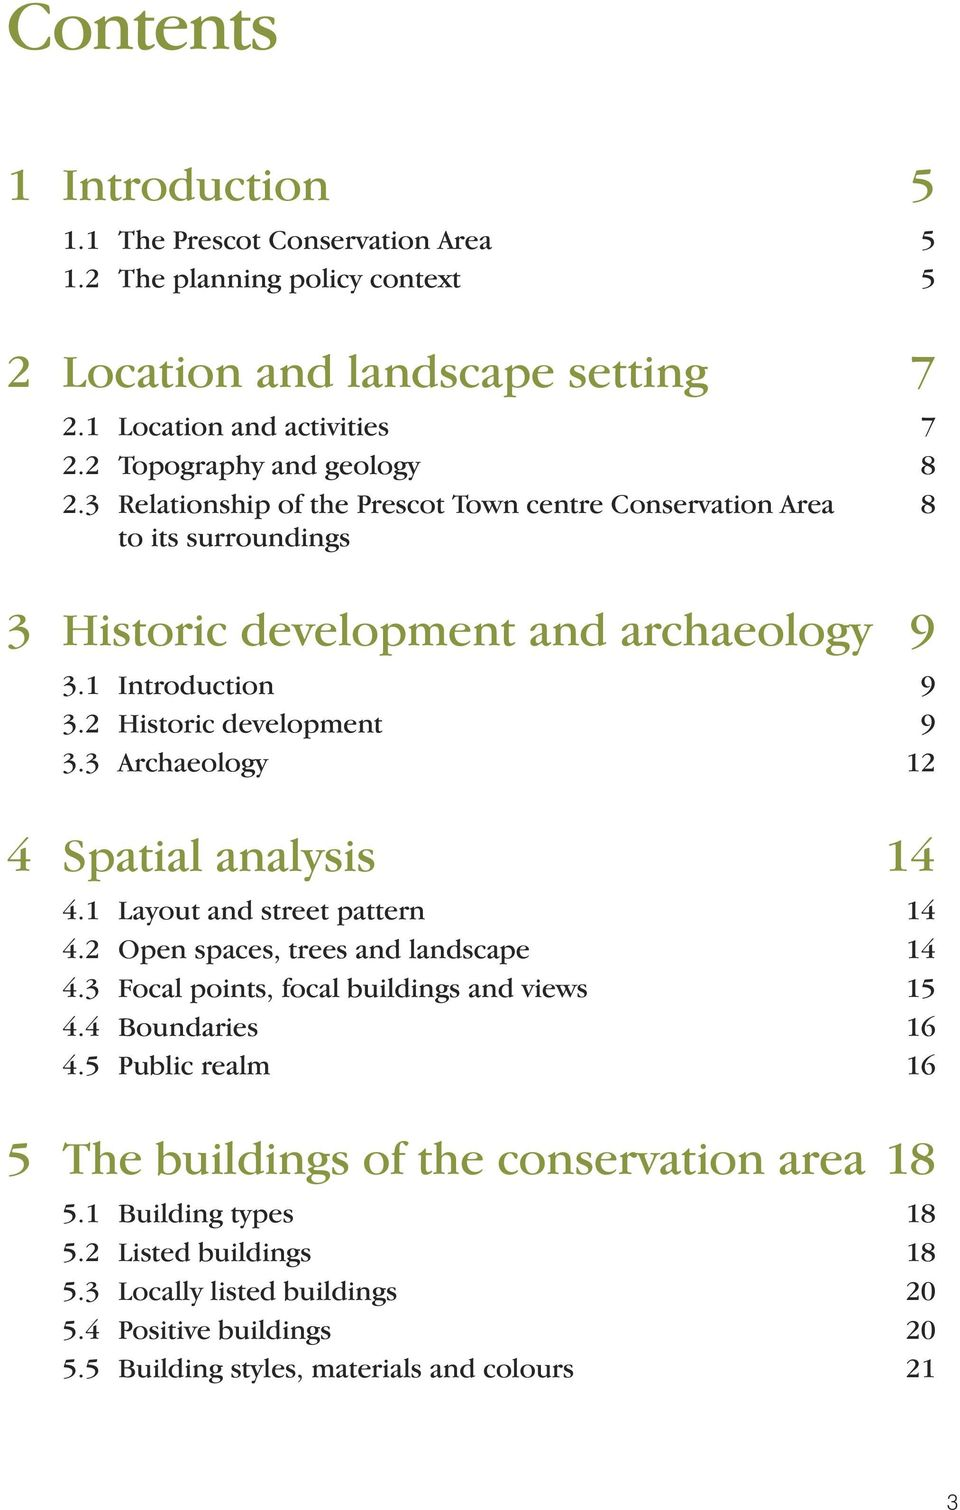 2 Historic development 9 3.3 Archaeology 12 4 Spatial analysis 14 4.1 Layout and street pattern 14 4.2 Open spaces, trees and landscape 14 4.3 Focal points, focal buildings and views 15 4.